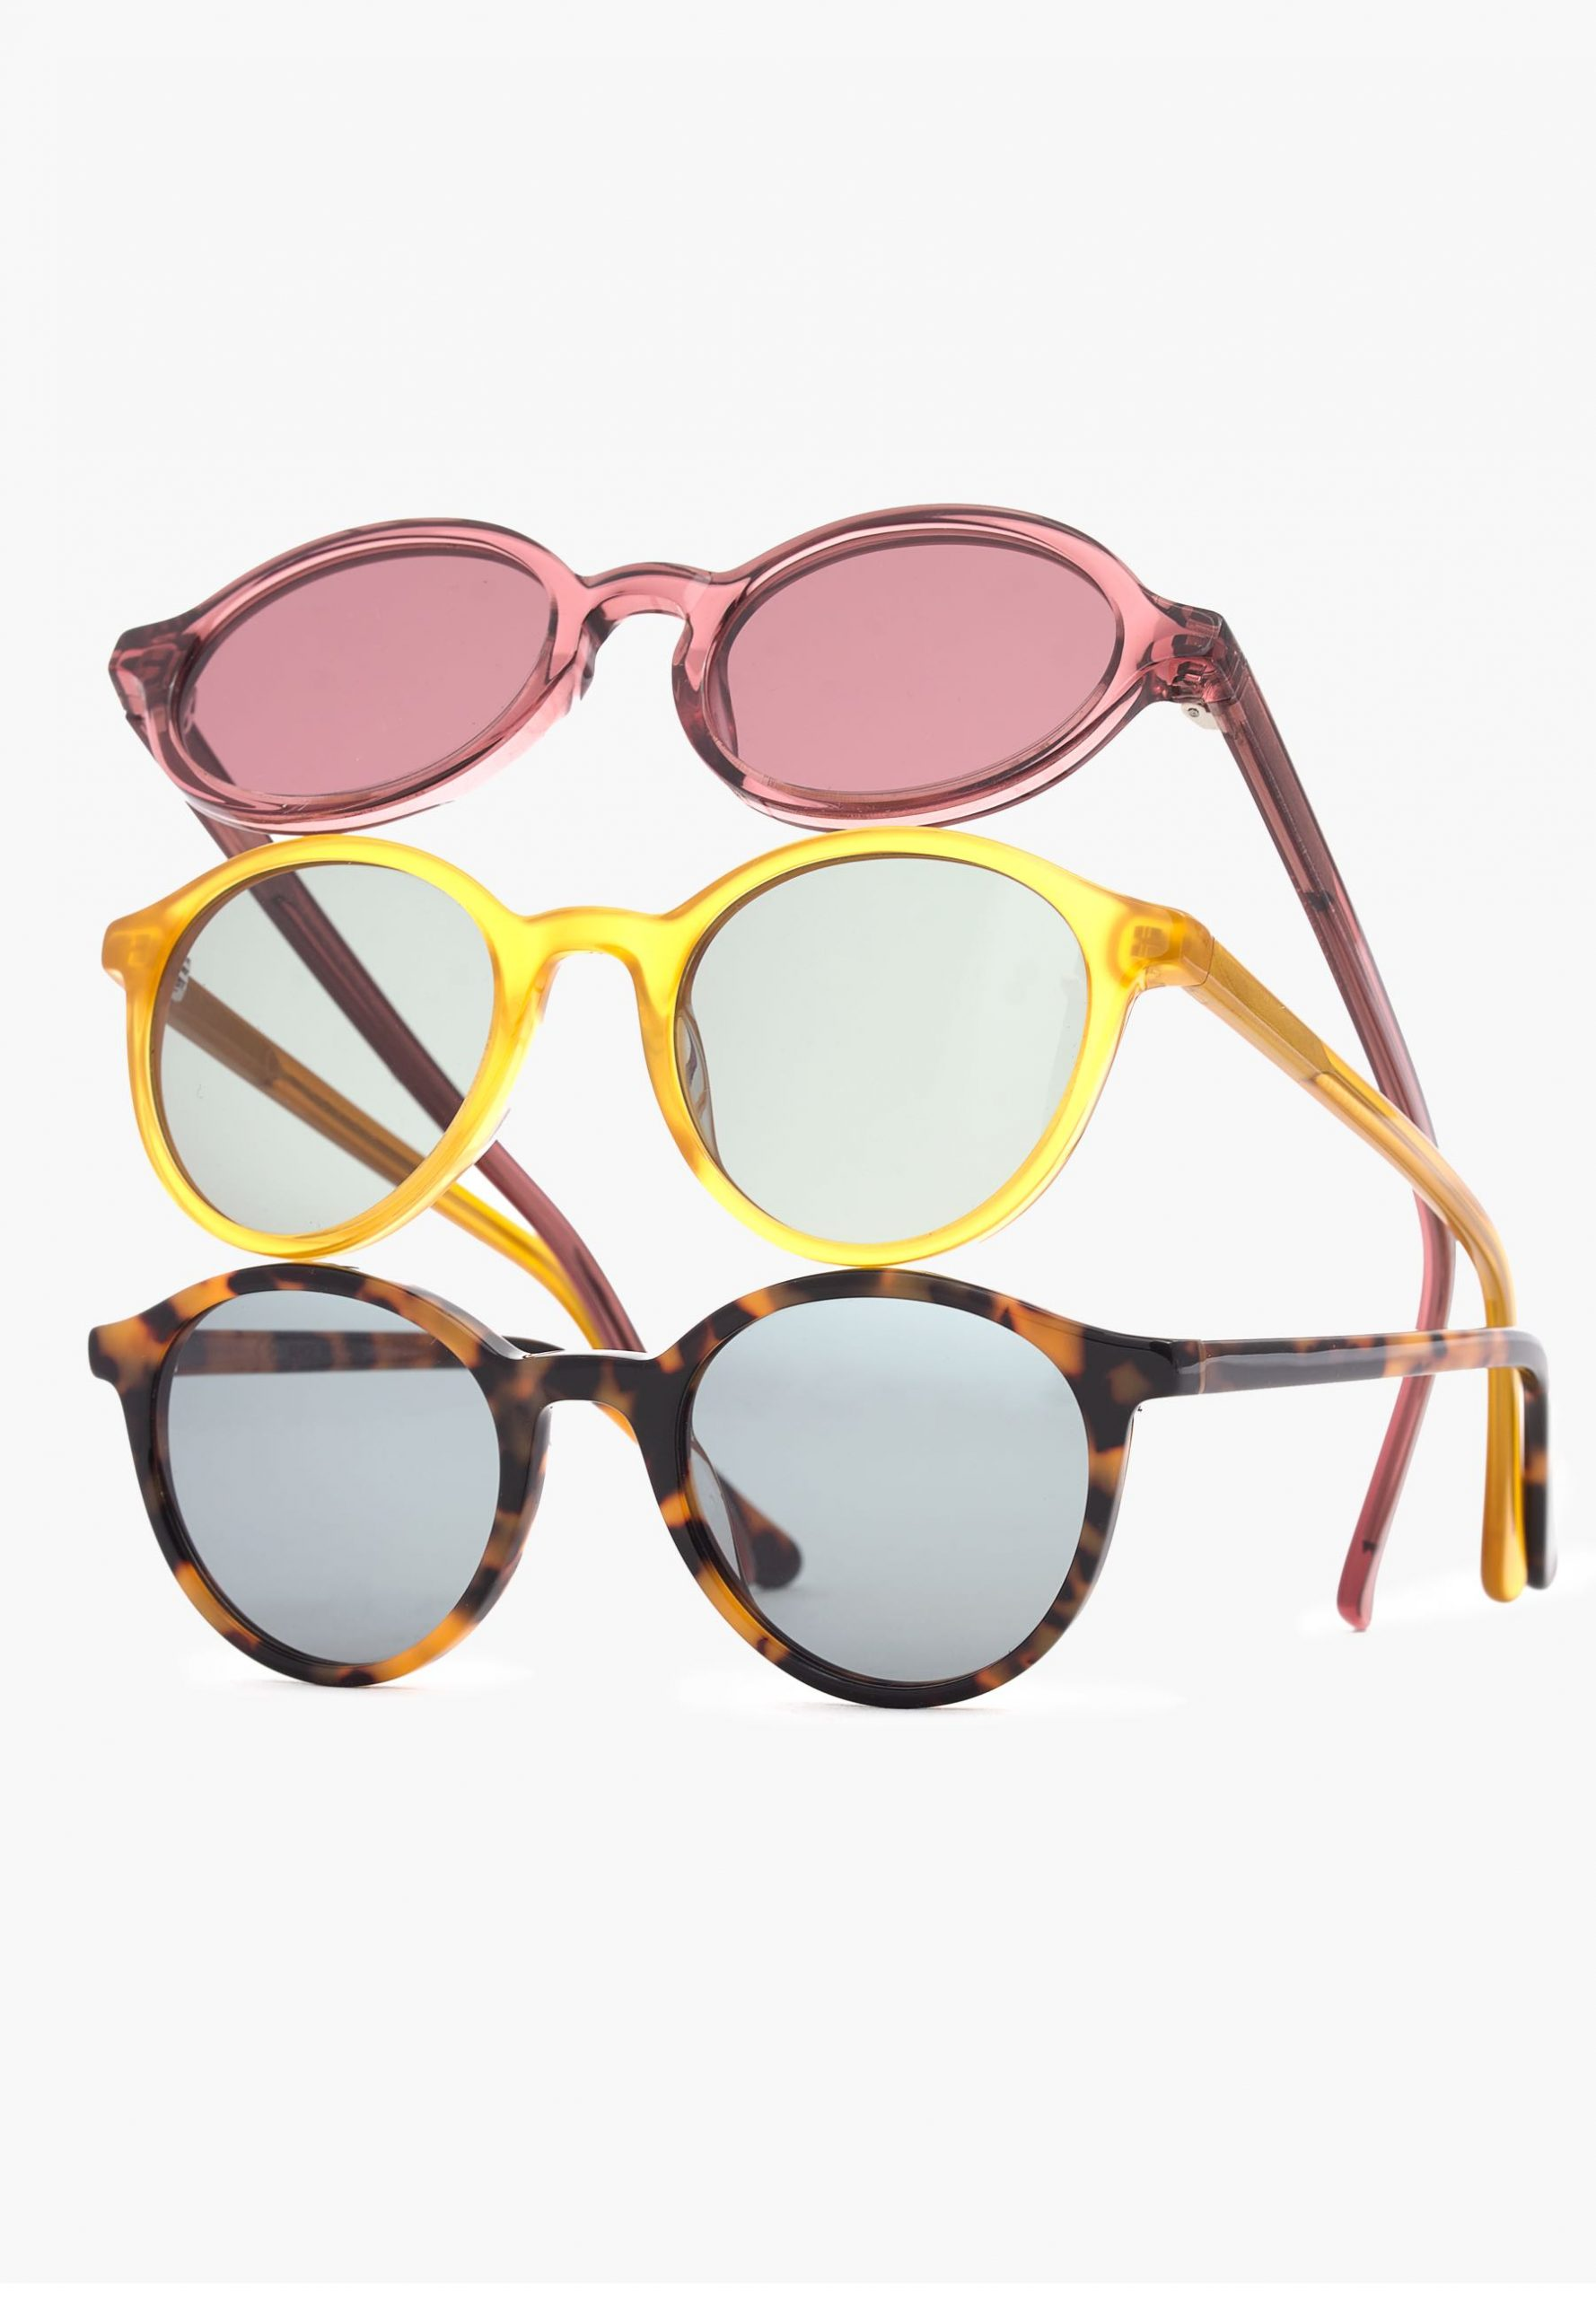 45bb5d31f0 How to Pick the Best Sunglasses for your Face Shape - The Rocky ...